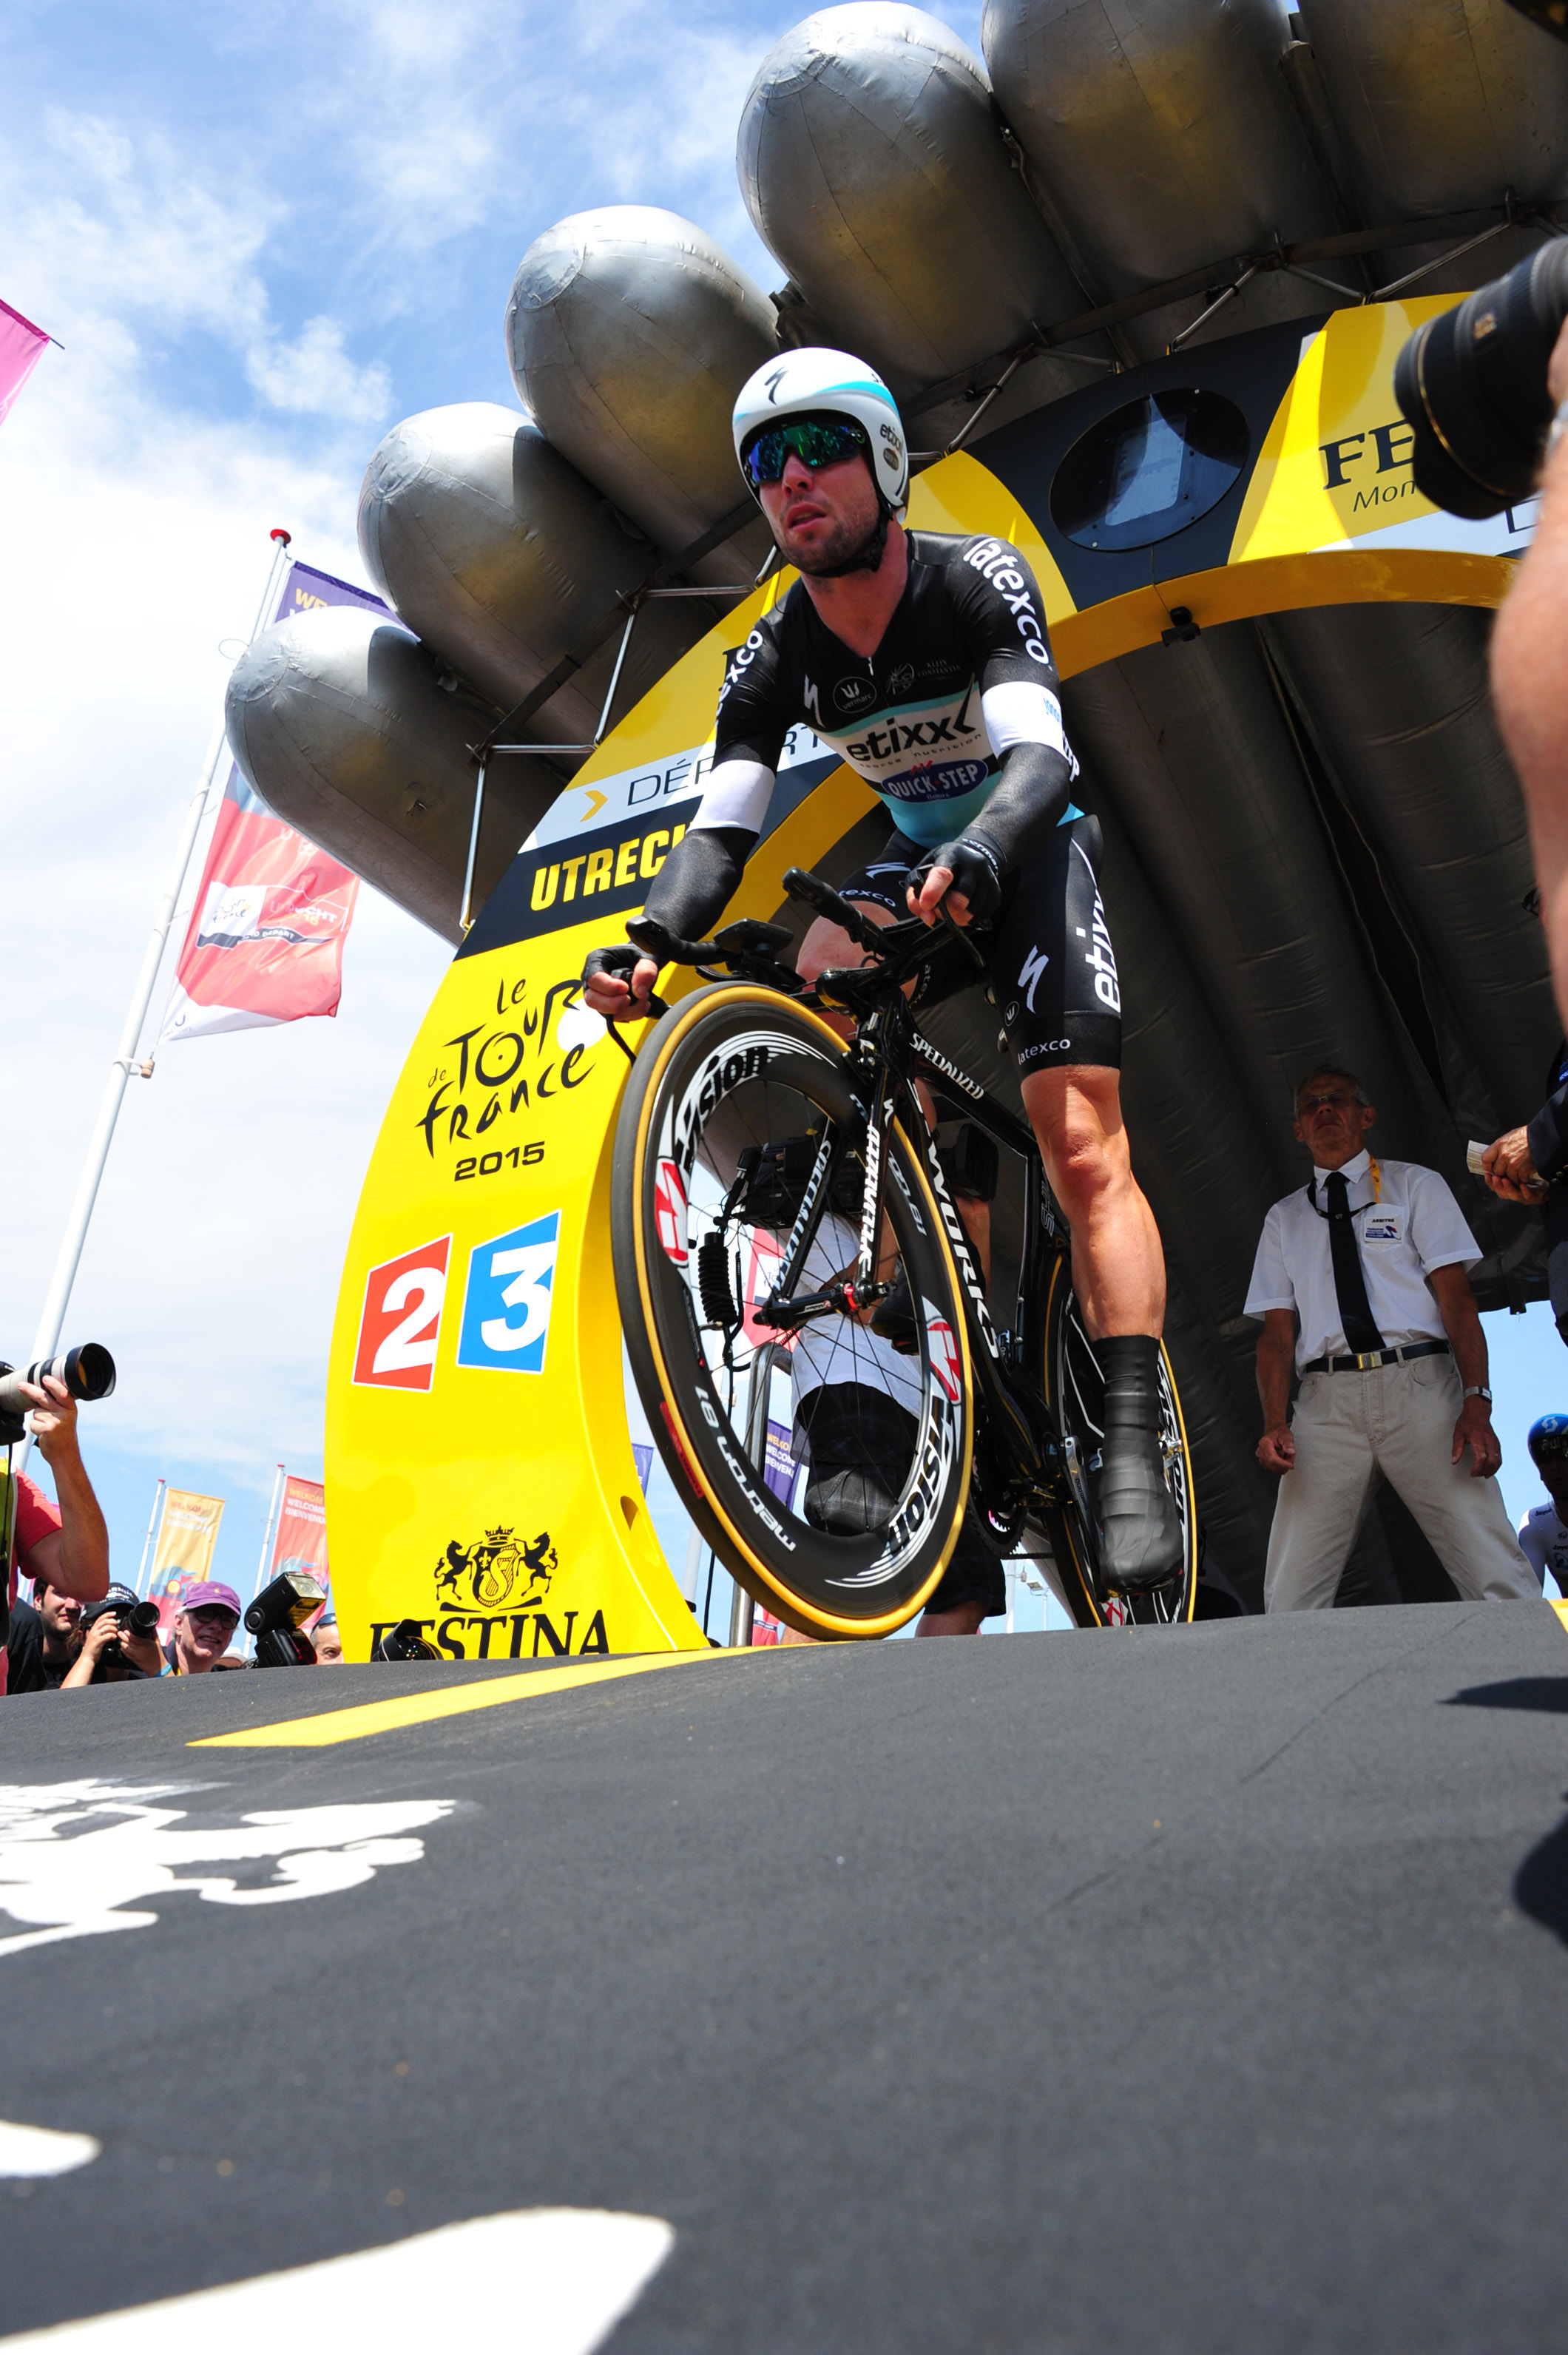 Mark Cavendish - Etixx - Quick Step